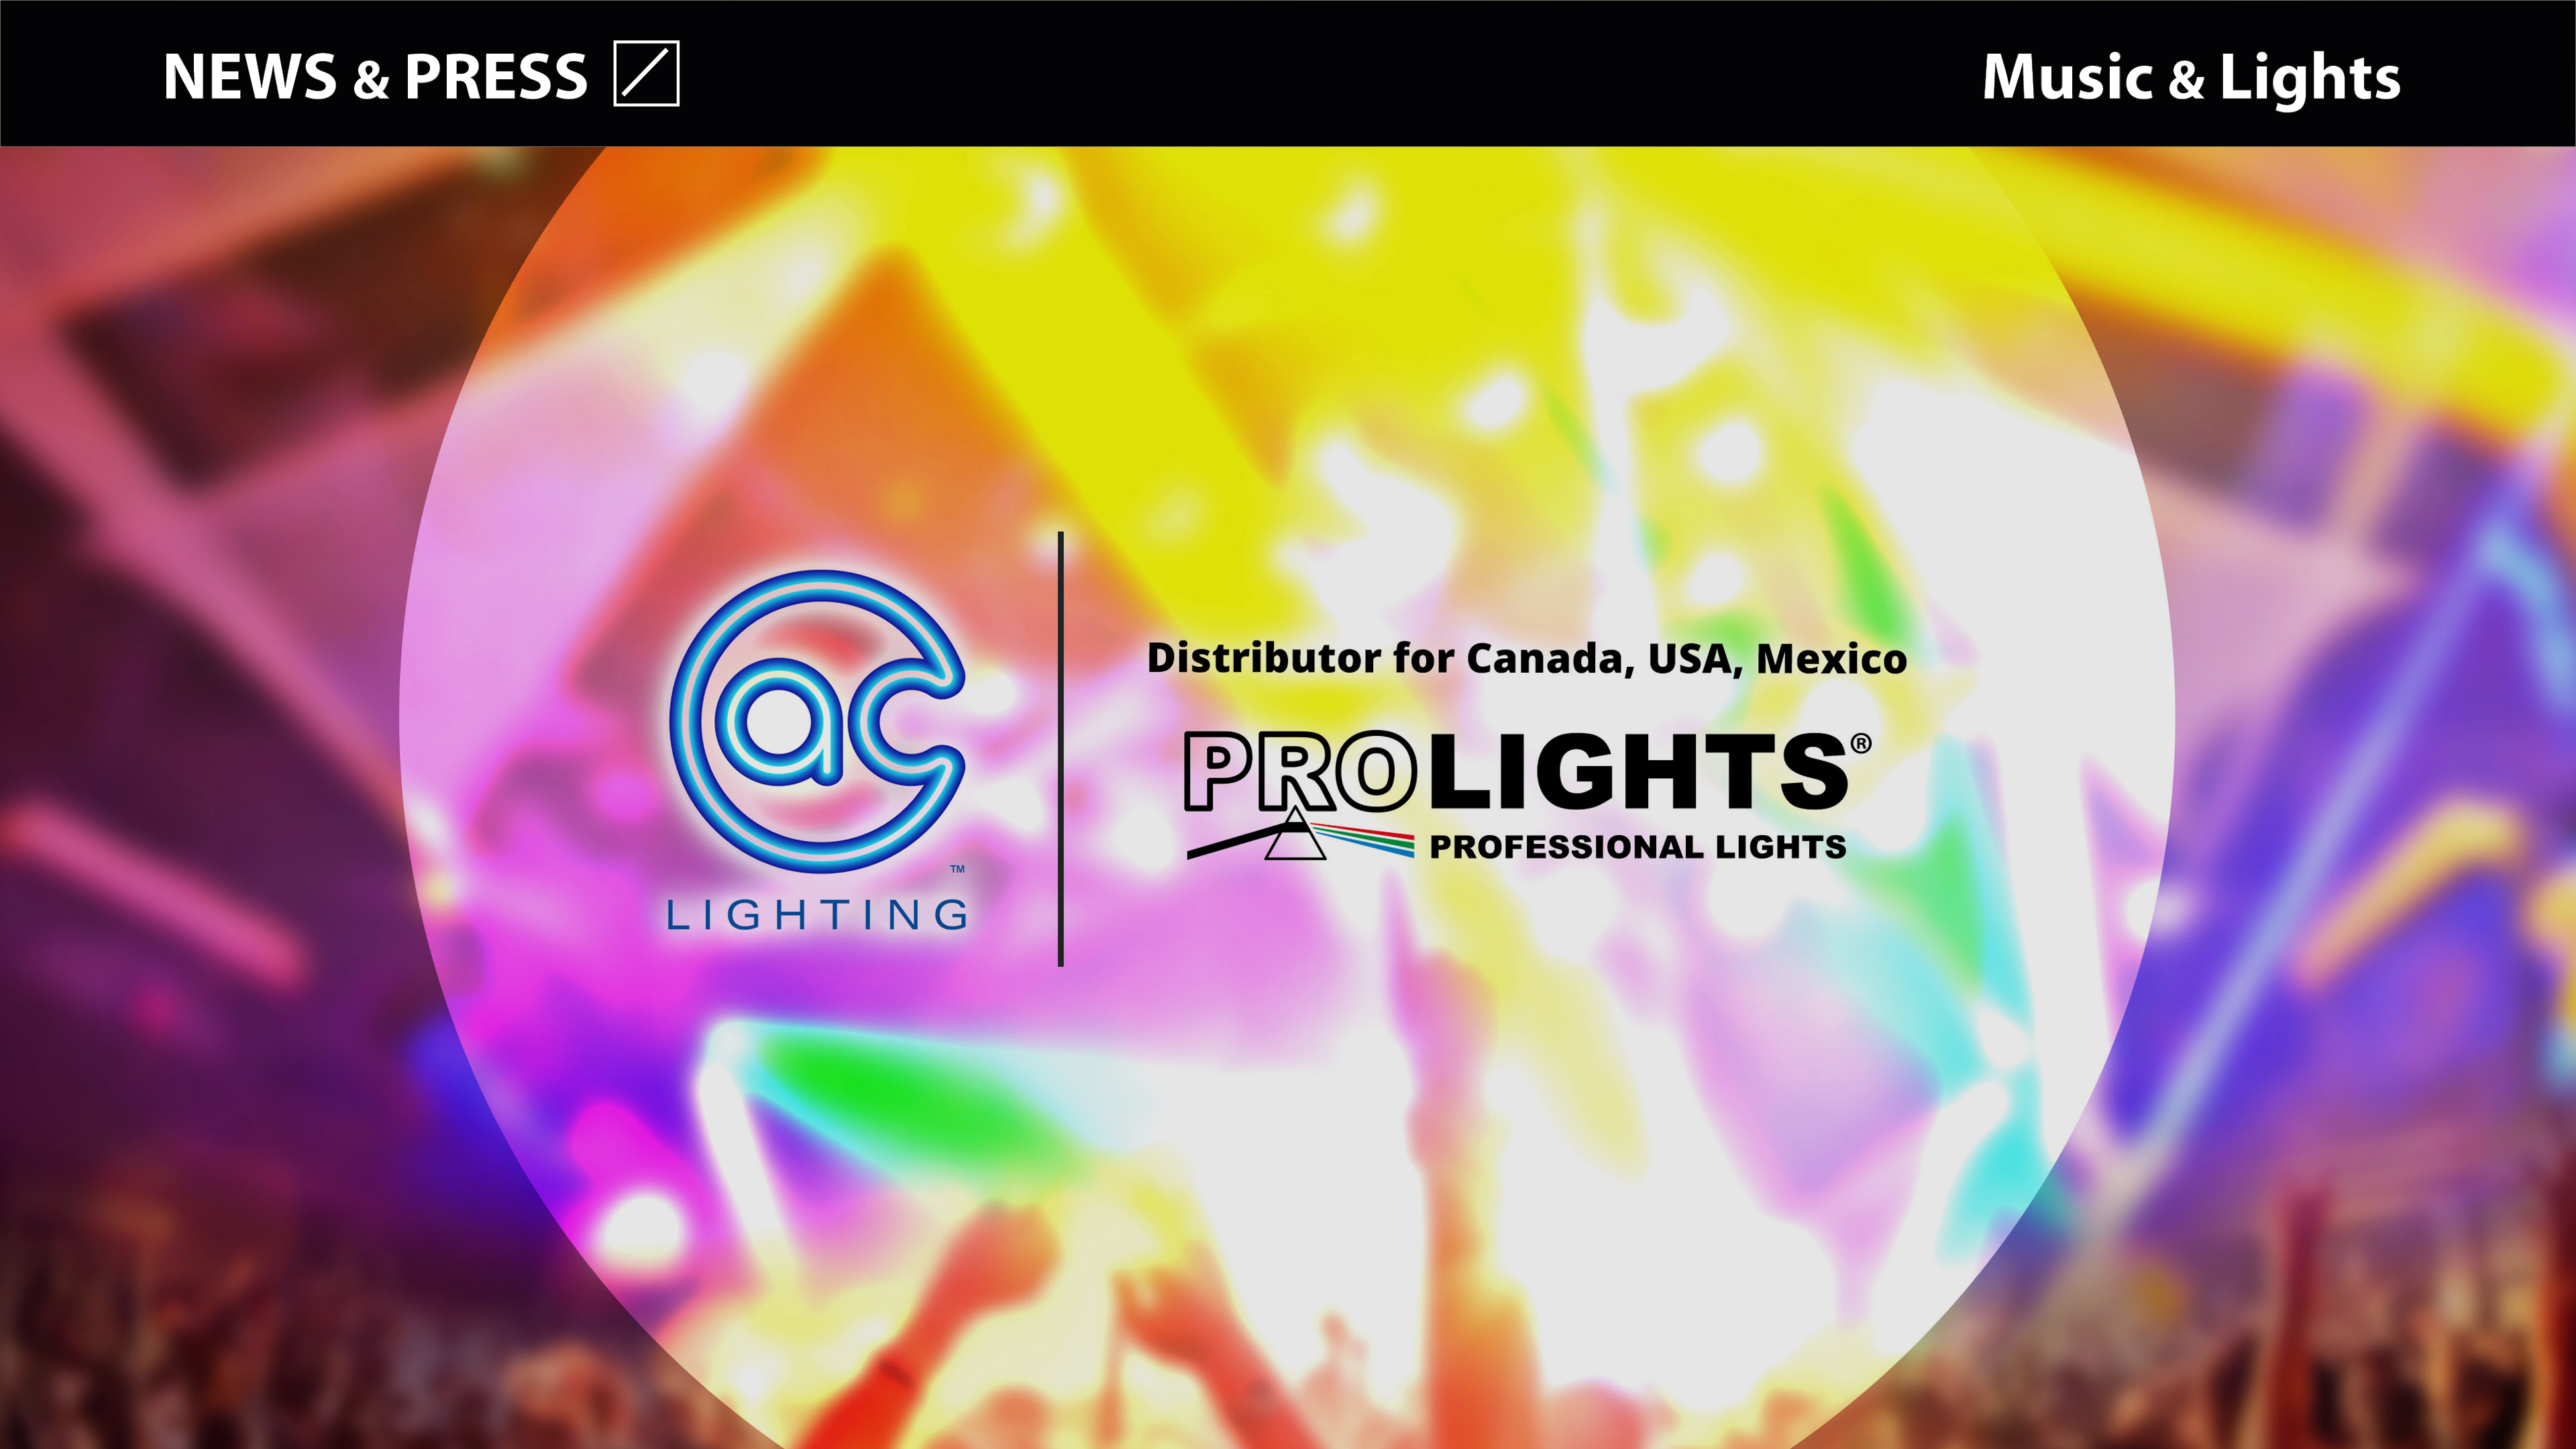 A.C. Lighting Inc. appointed as PROLIGHTS's  North American Distributor